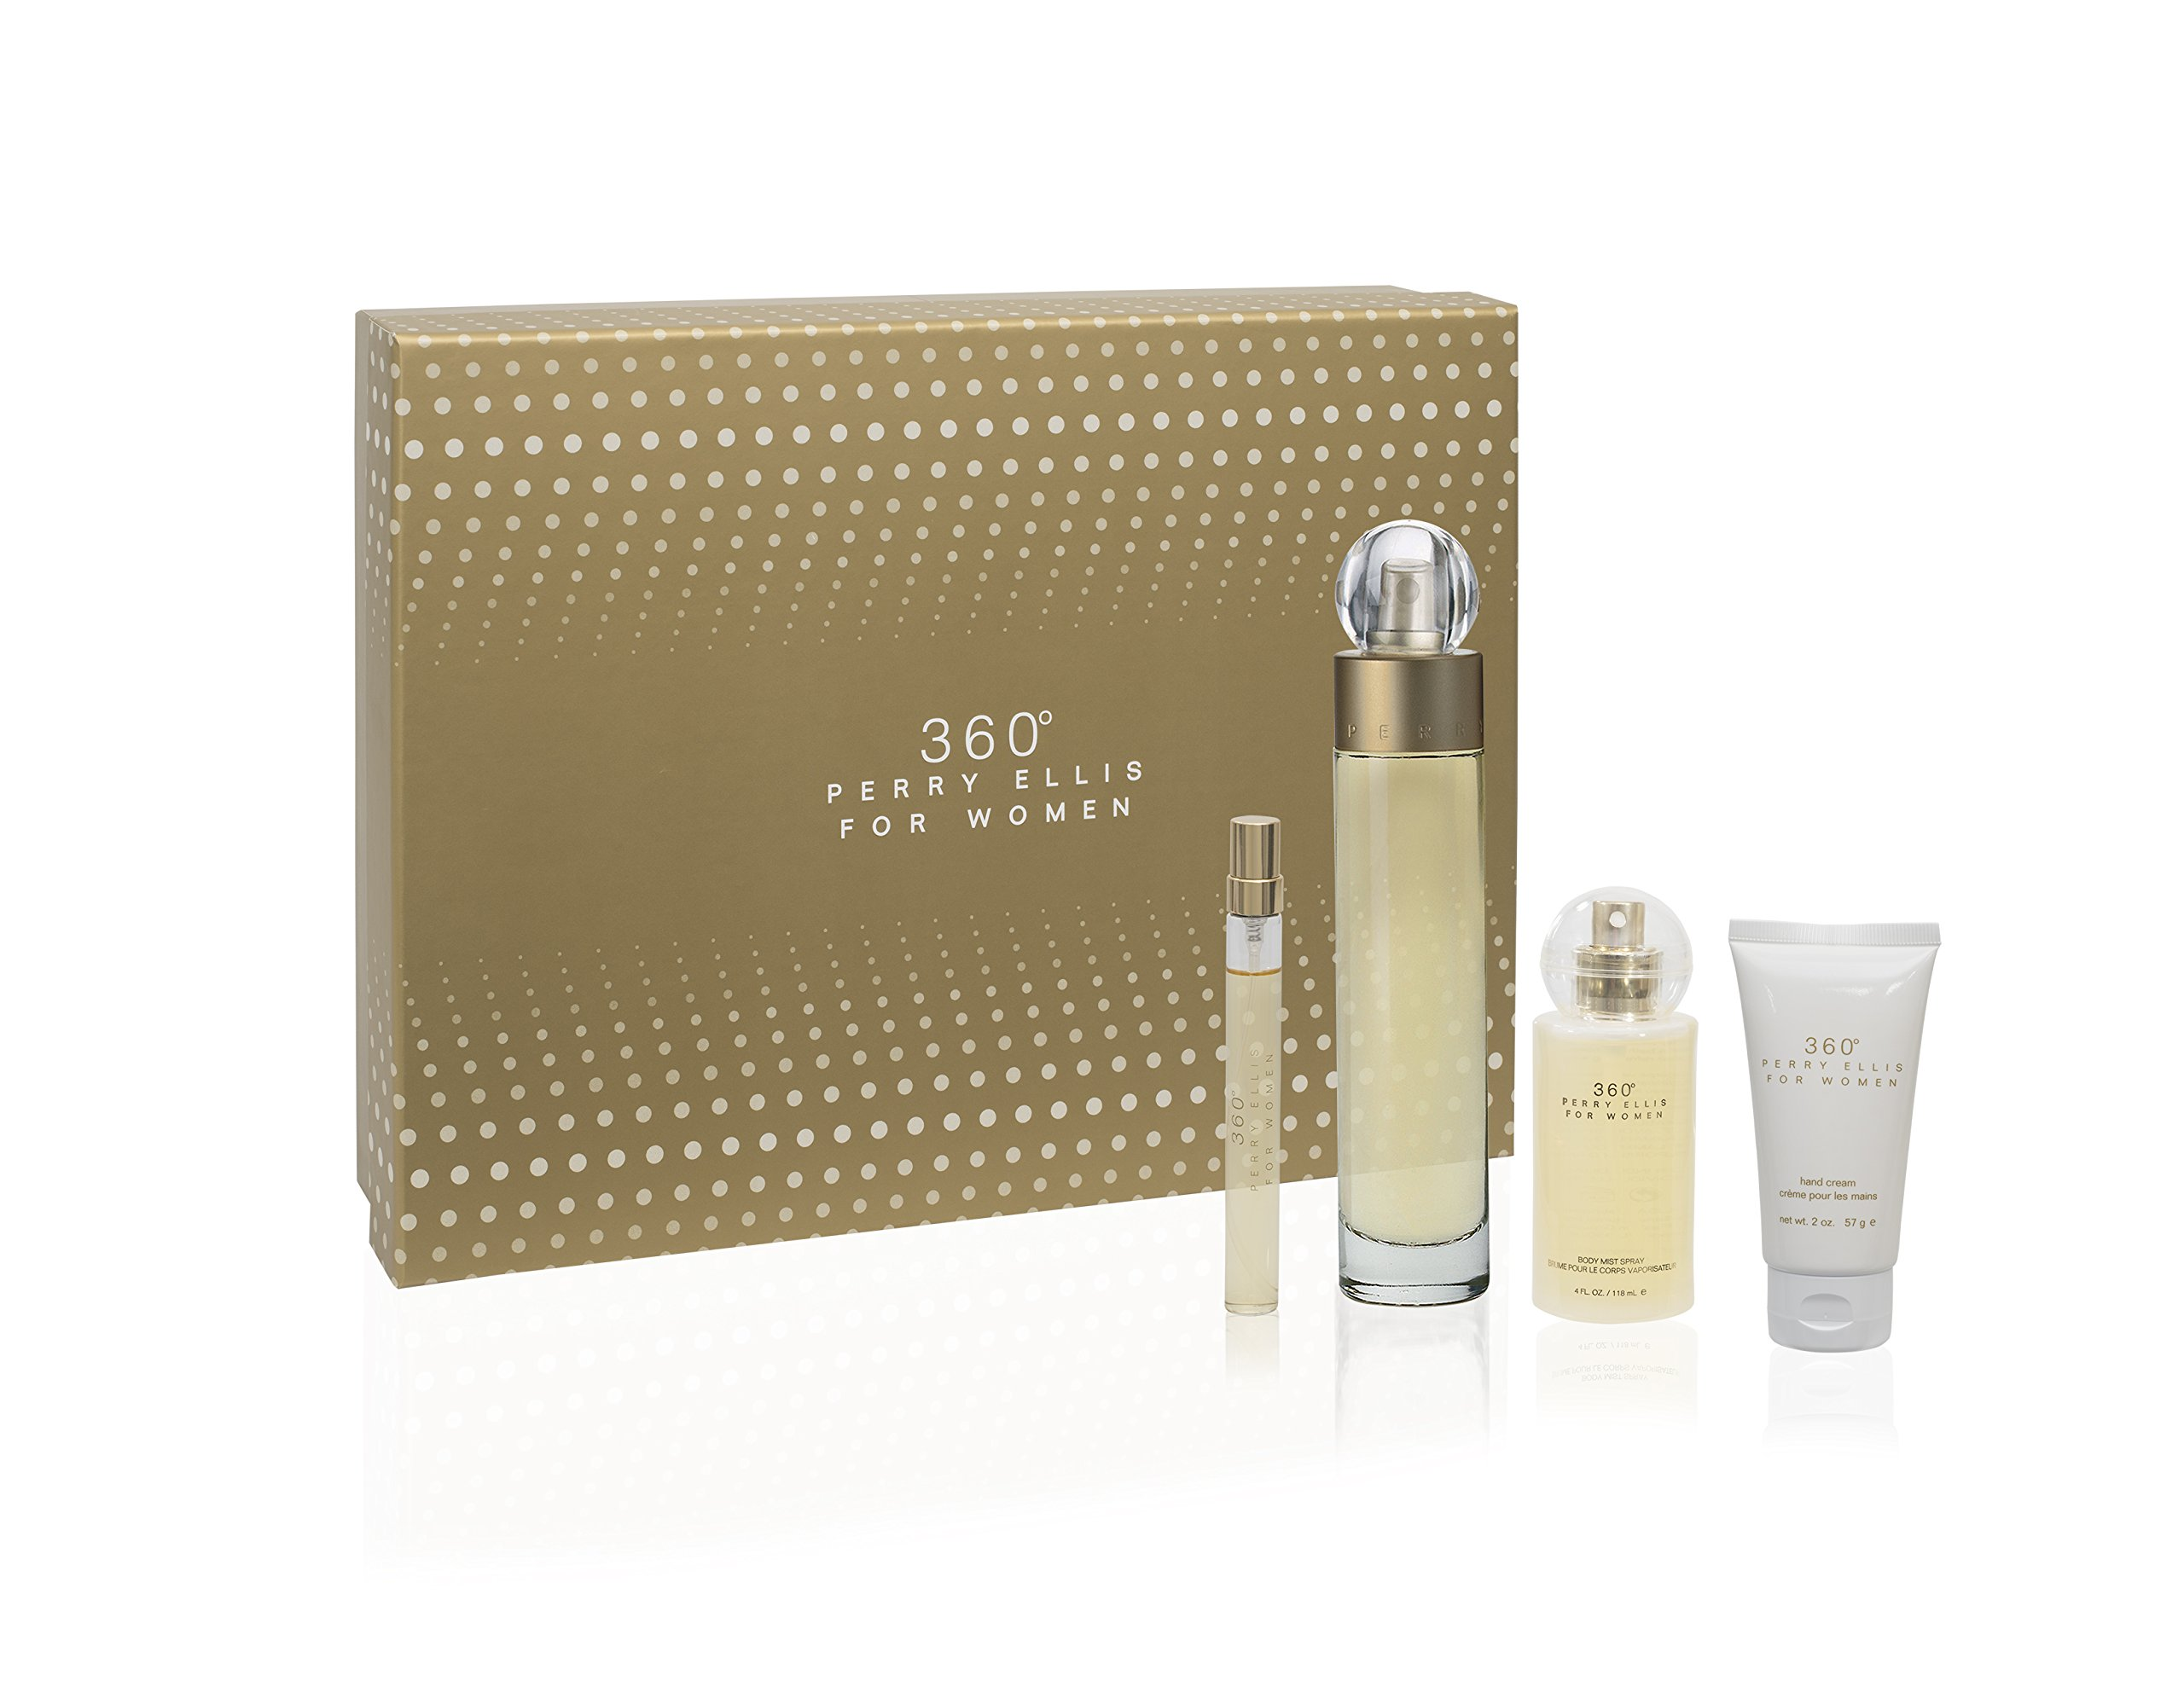 Perry Ellis 360 for Women 4 Piece Gift Set by Perry Ellis Fragrances